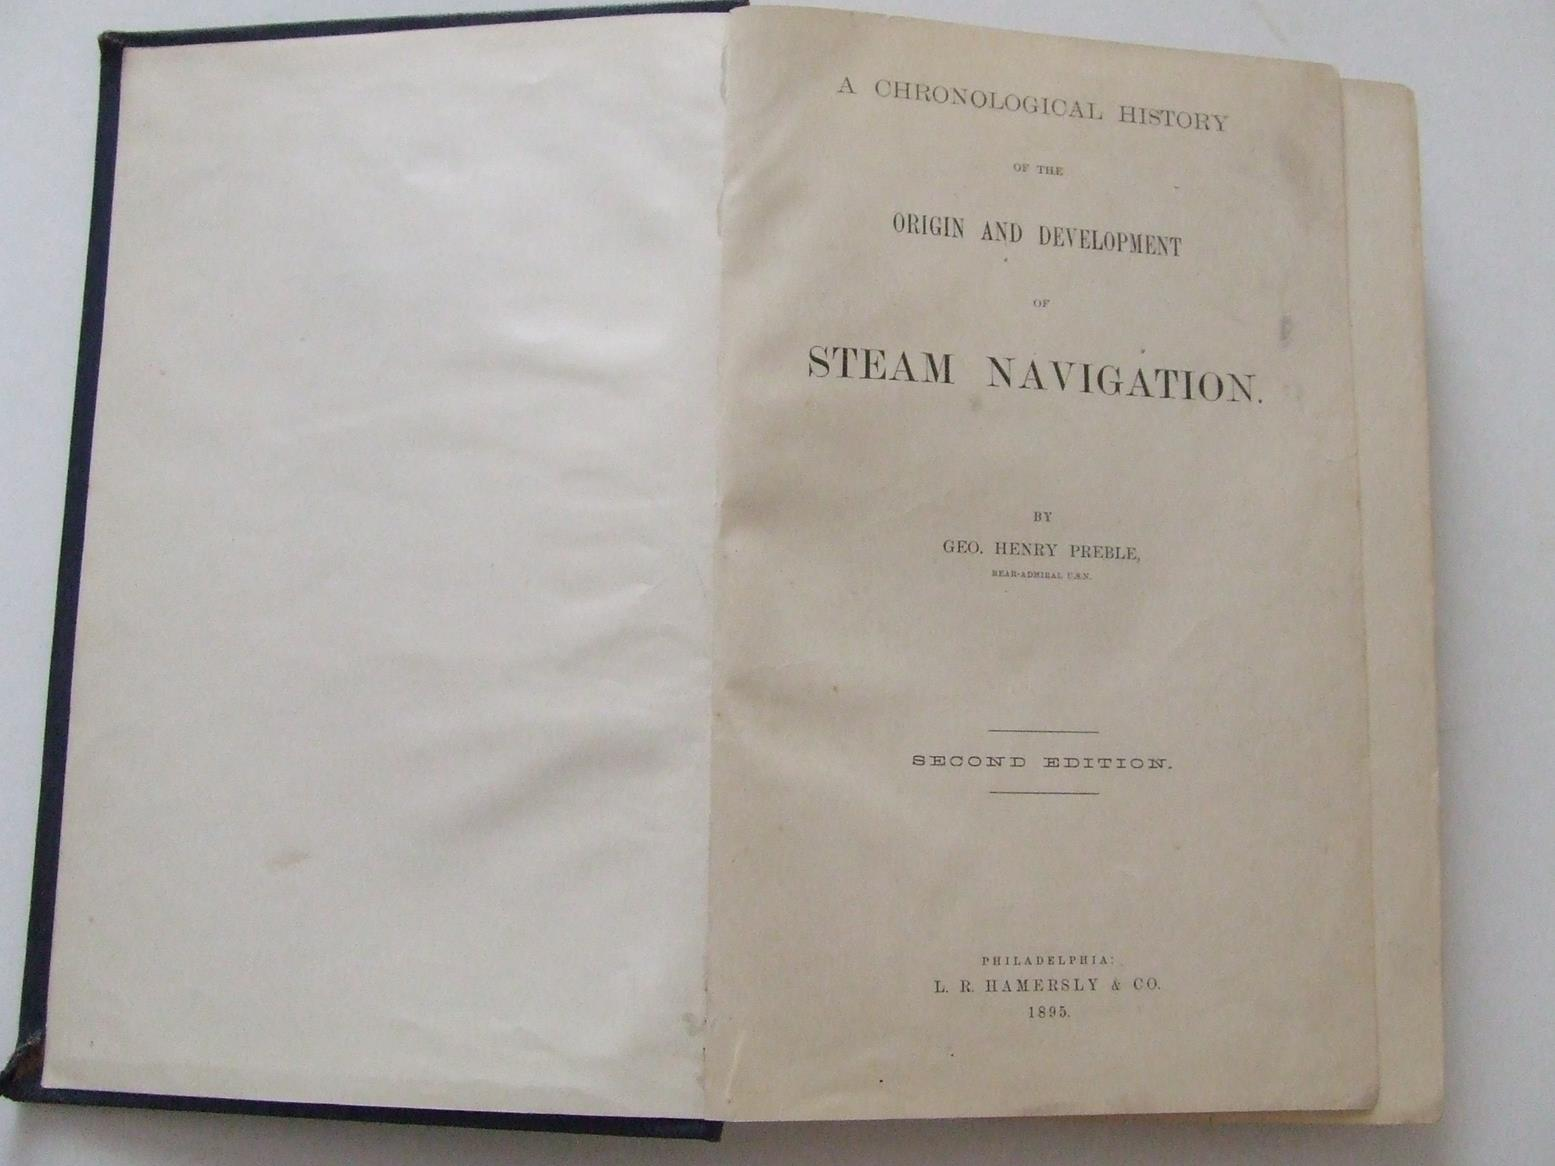 Chronological History of the Origin and Development of Steam Navigation